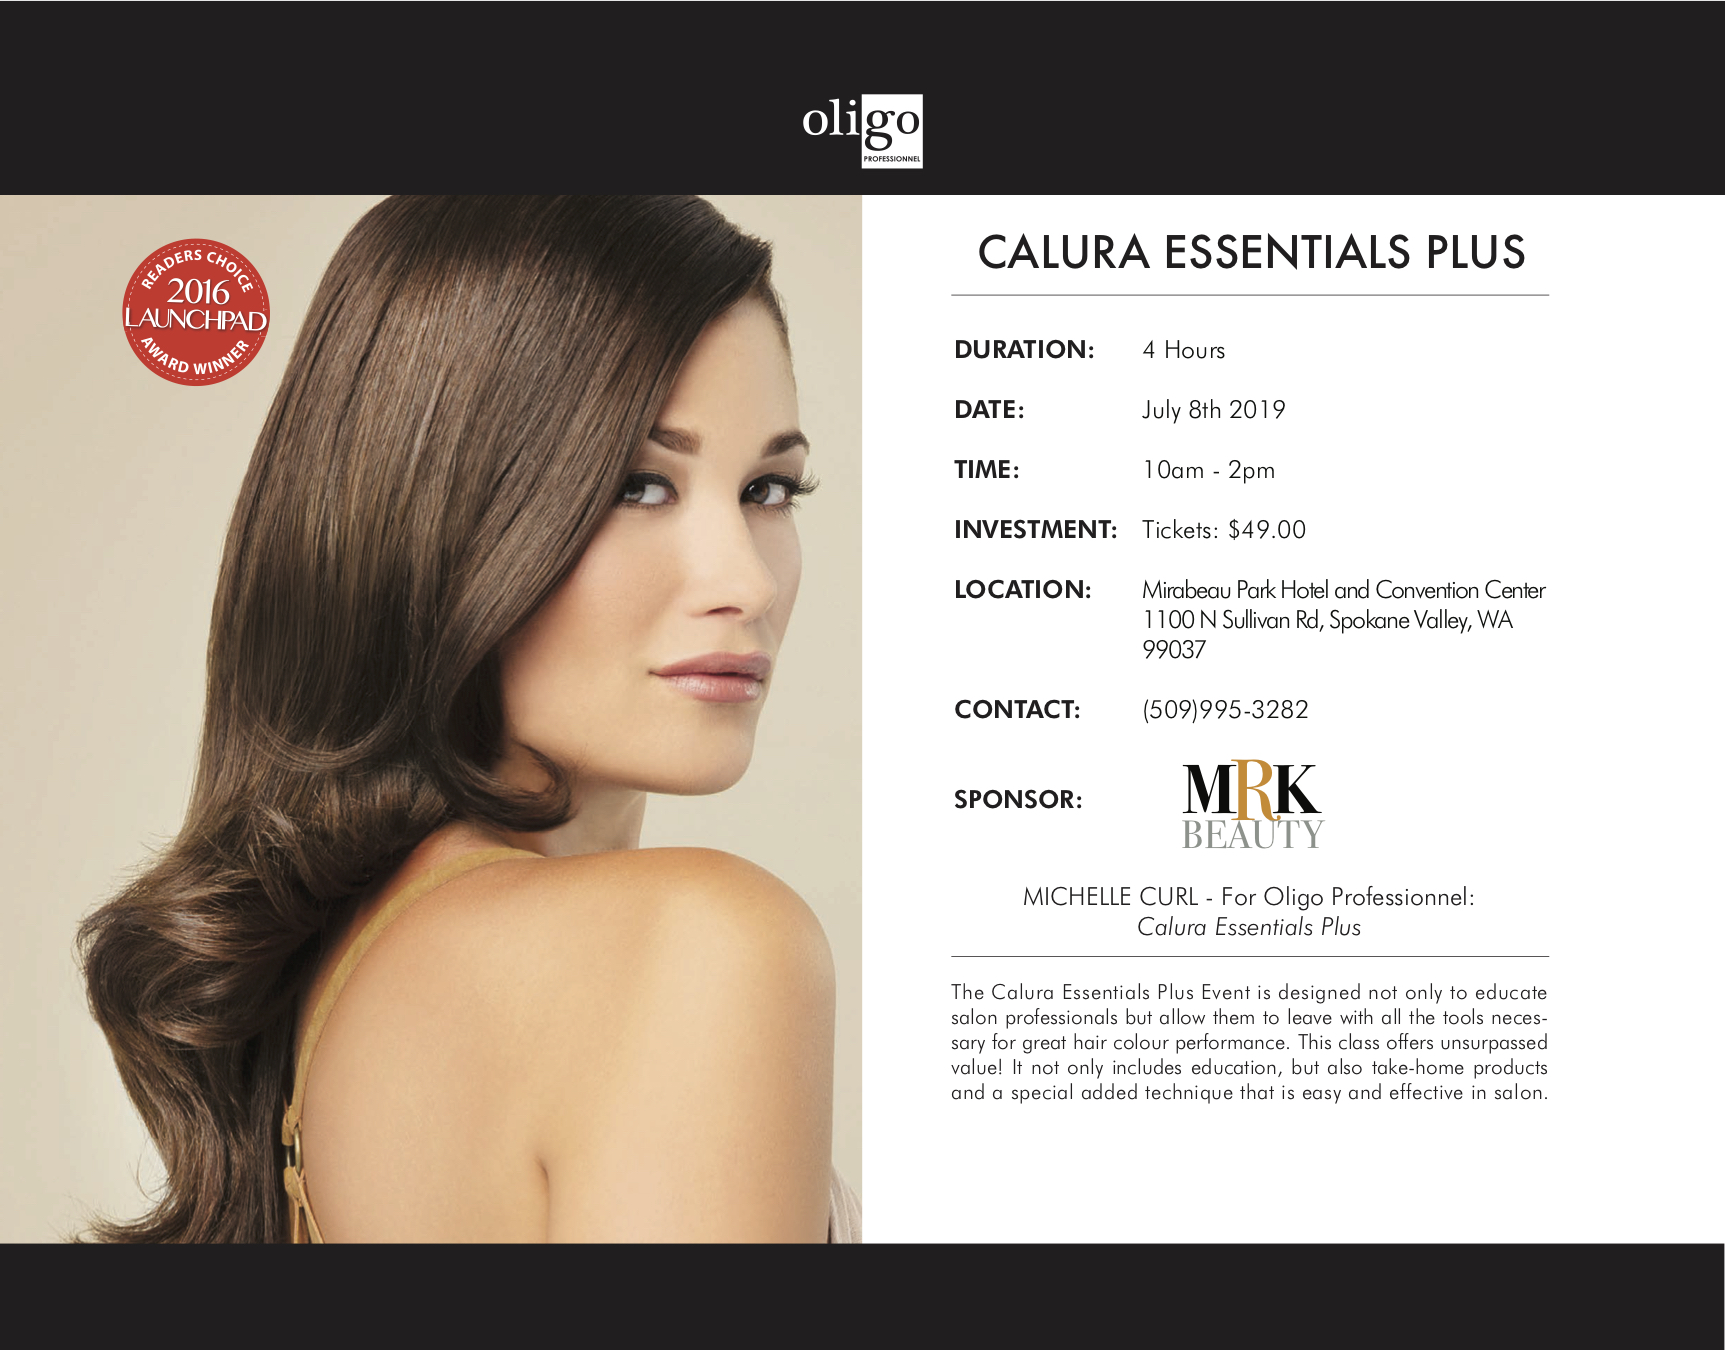 CALURA ESSENTIALS PLUS_July 8th_with logo.jpg